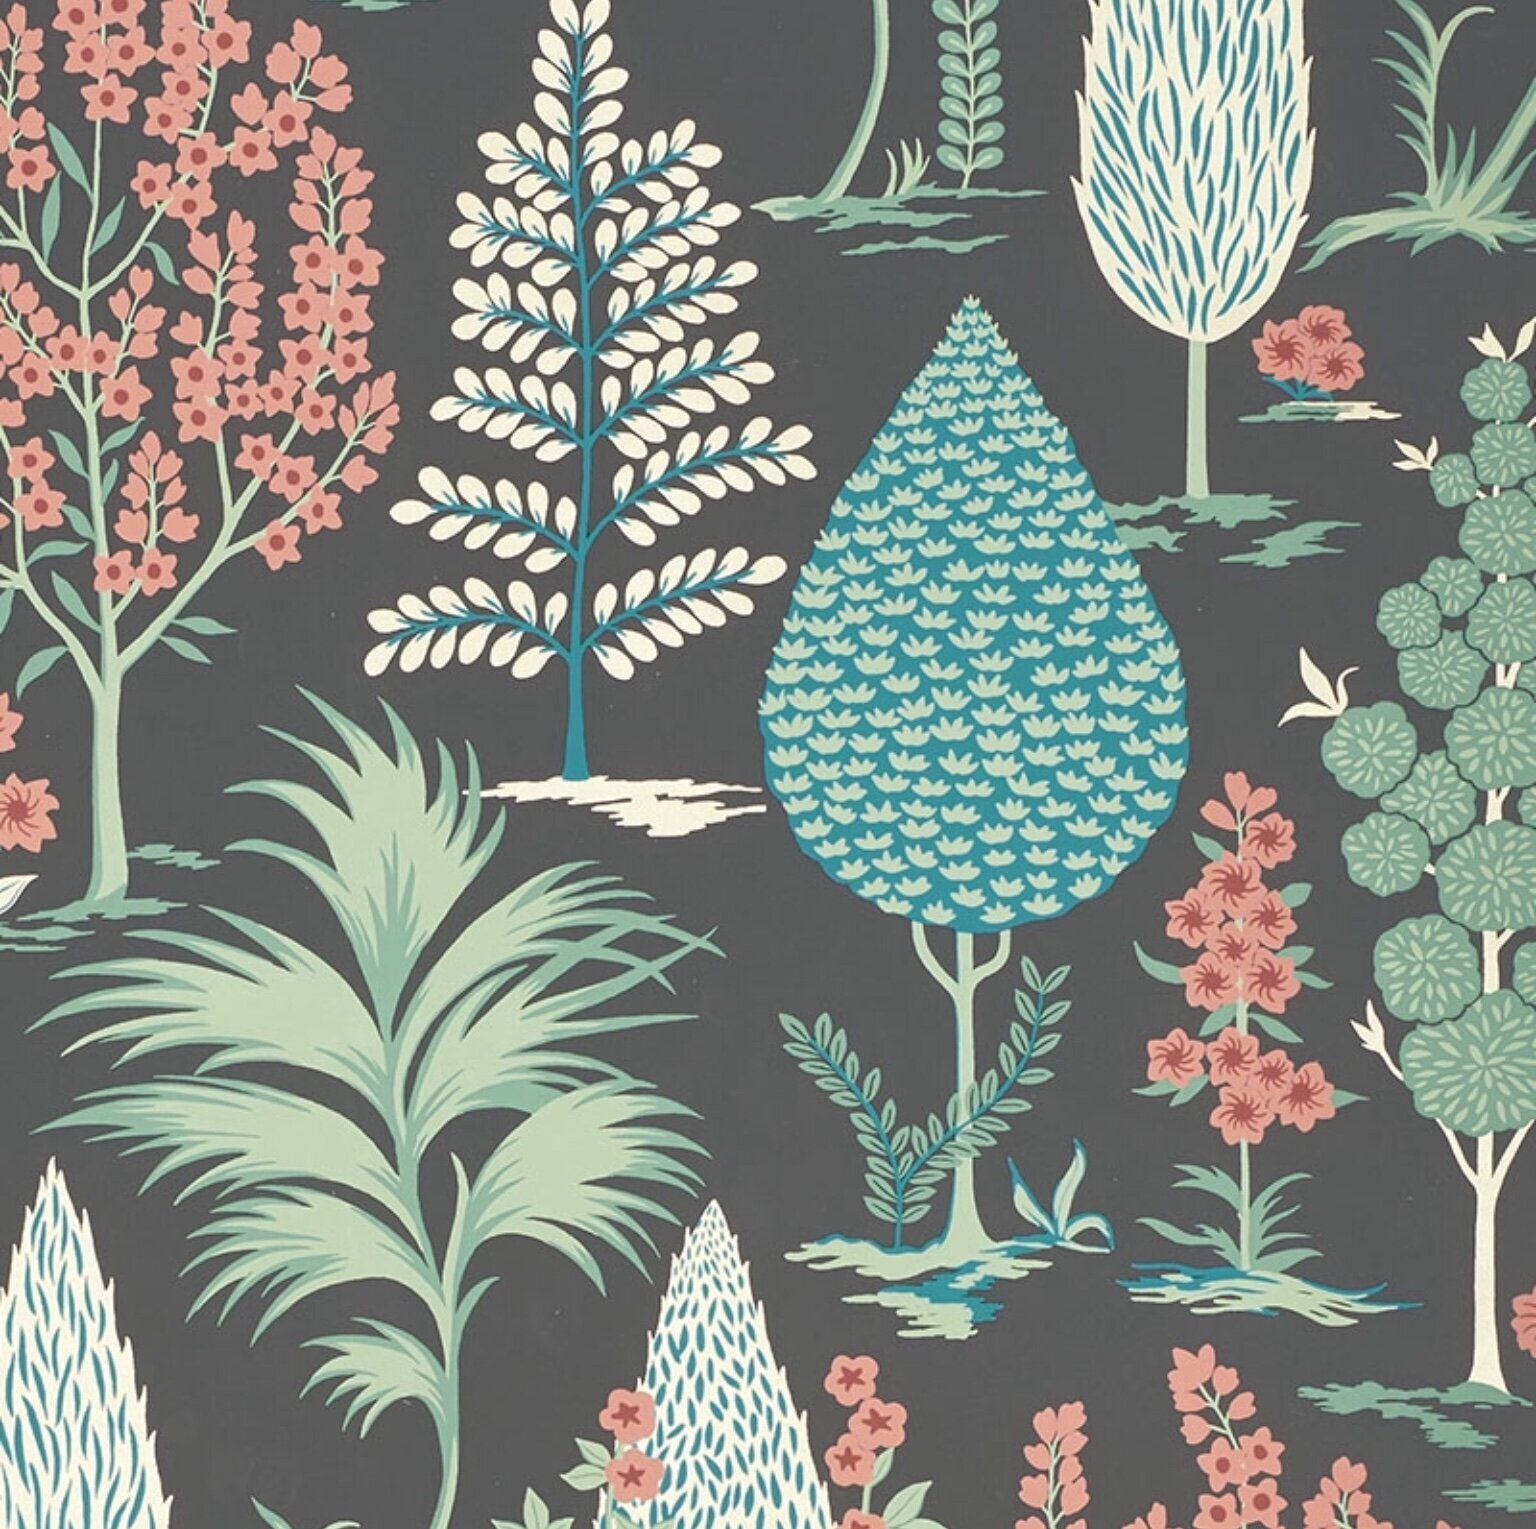 Pandora wallpaper in onyx and jade . Gorgeous and whimsical.